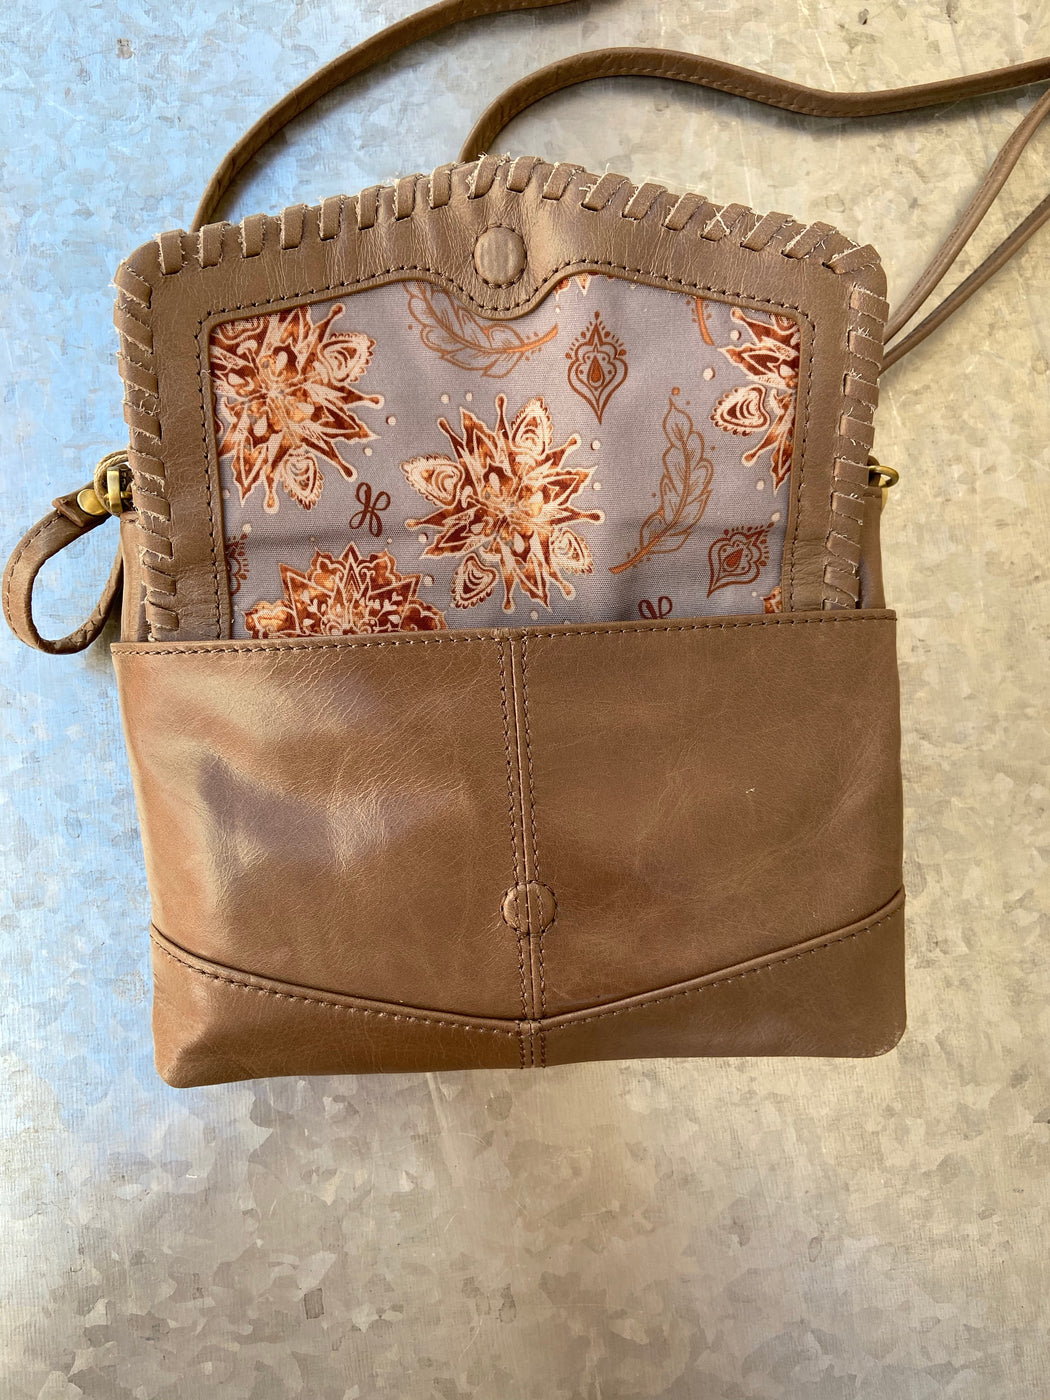 Two bags in one! The Stroll crossbody easily converts to your grab & go wristlet by simply removing the long crossbody strap. It's the perfect size for your phones, ID, cash, and credit cards. Crafted in our signature vintage hide leather that only gets more beautiful over time with use and wear.